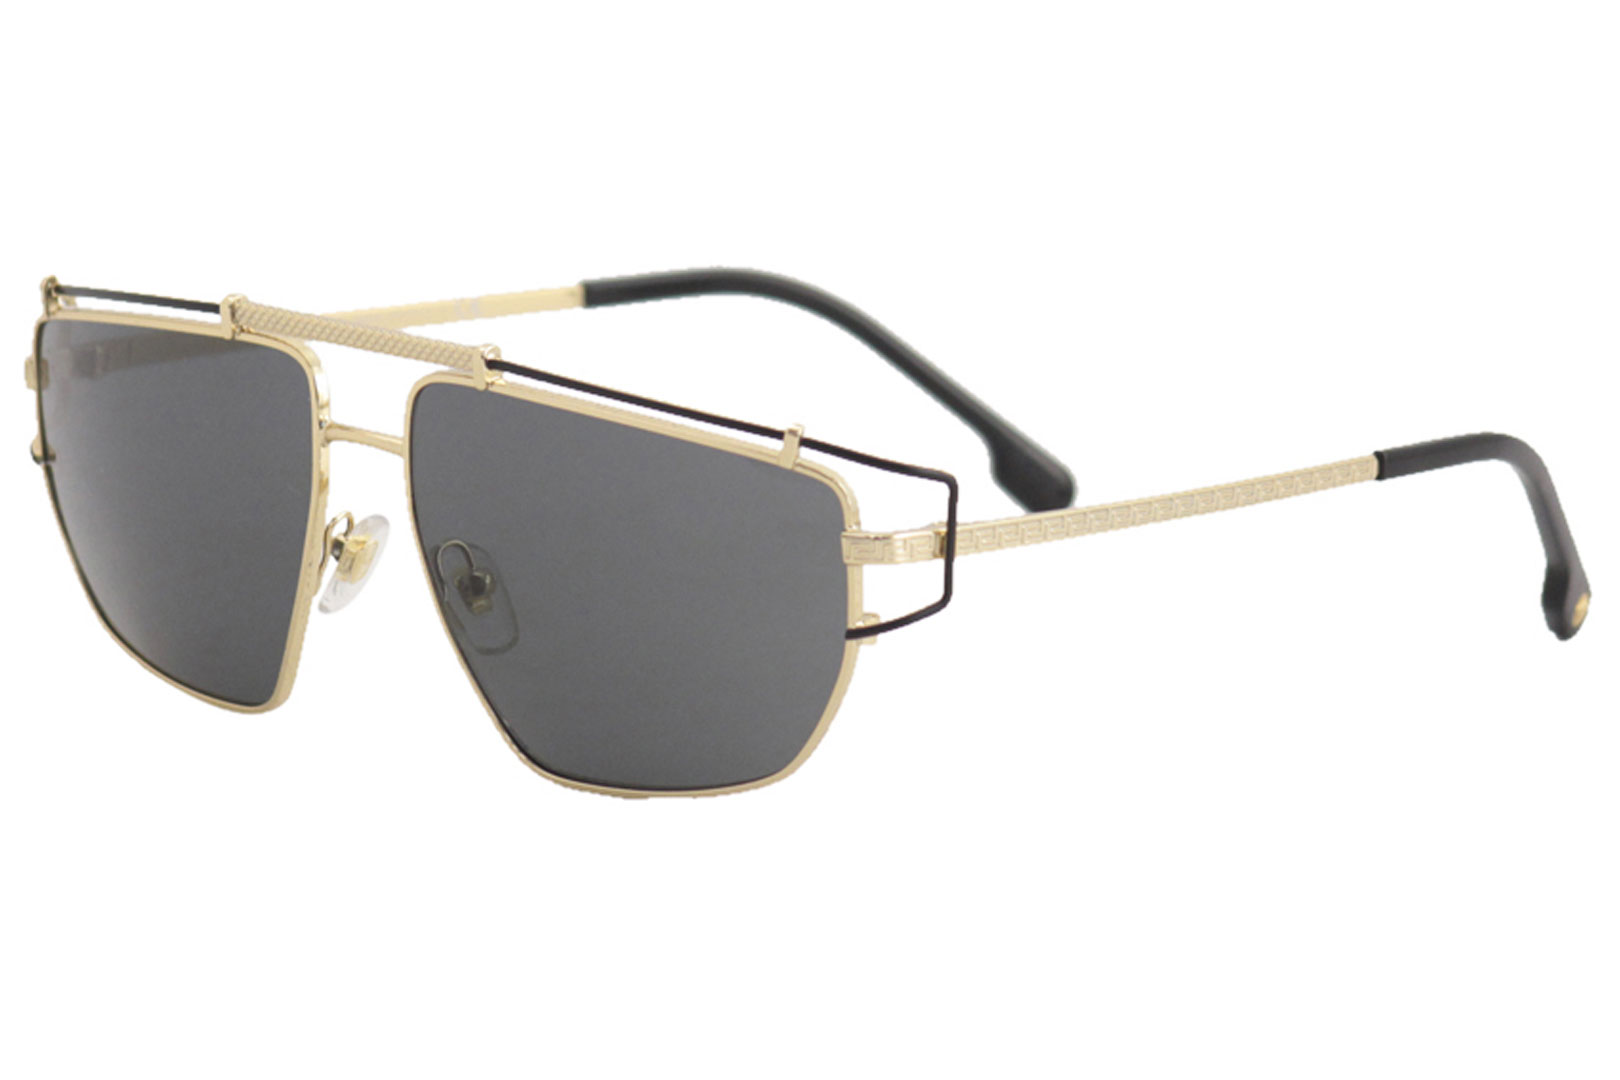 07a150f18d6a Versace Men s VE2202 VE 2202 1436 87 Gold Fashion Pilot Sunglasses ...